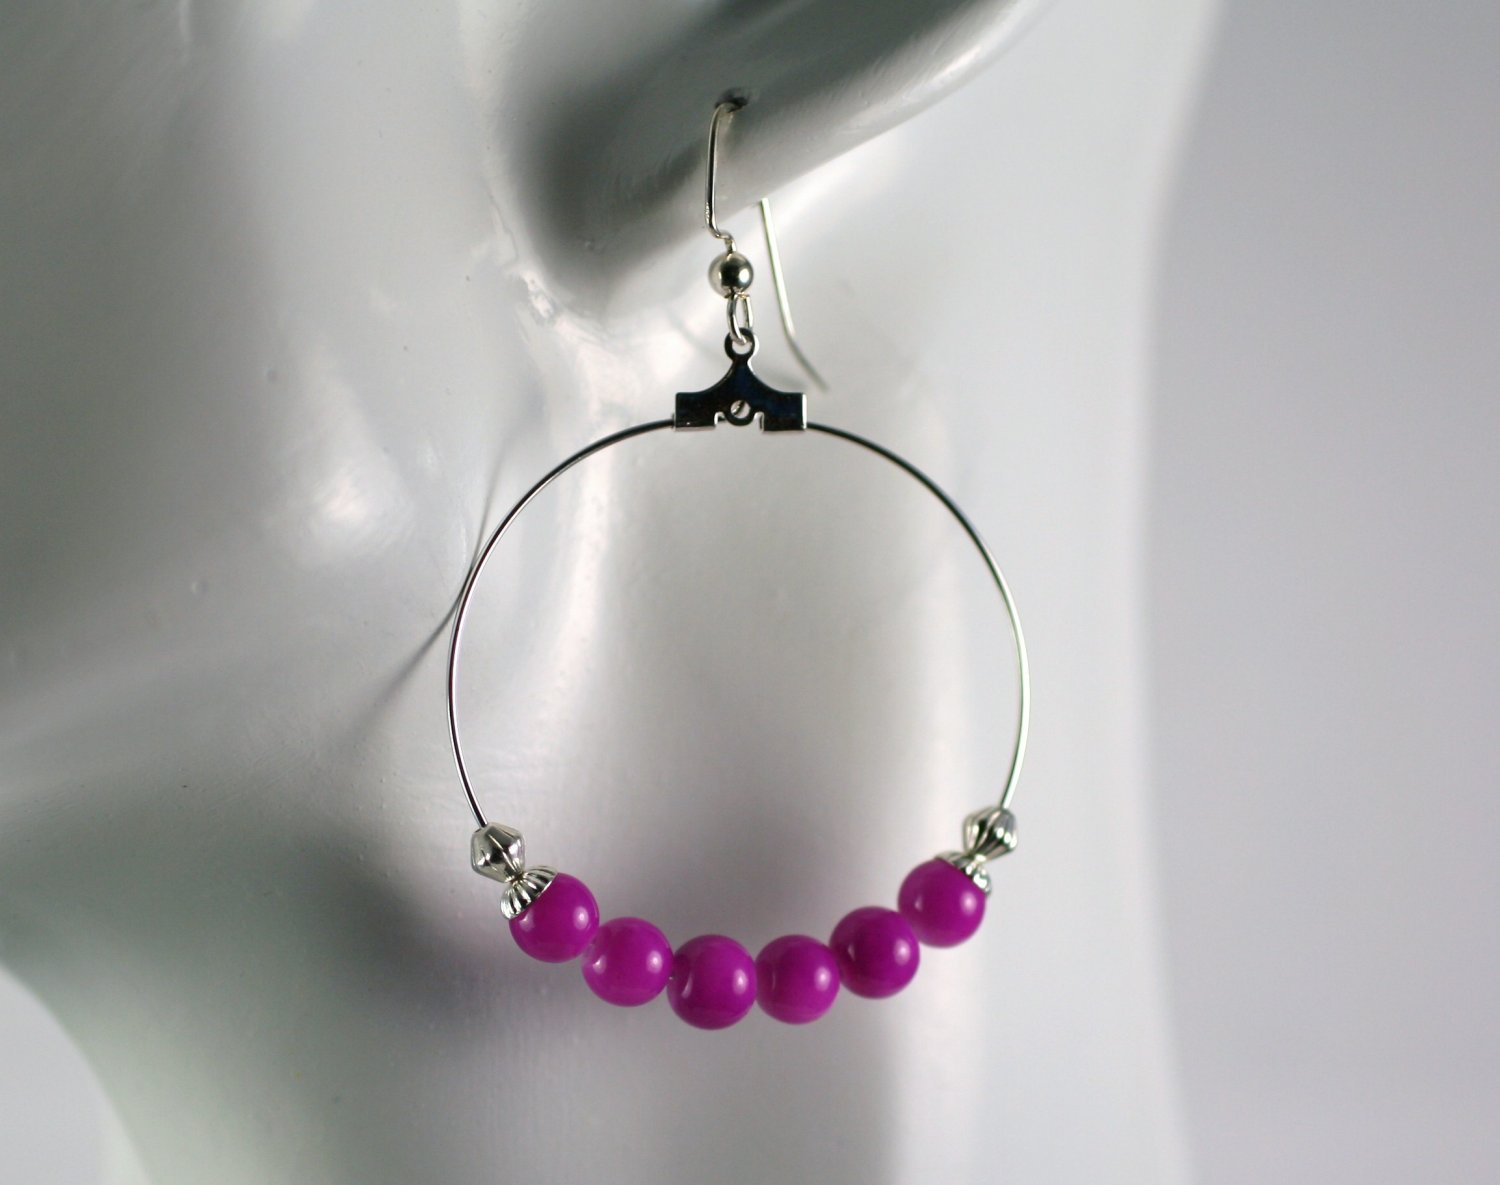 Silver Hoop Earrings with Pink Glass Beads 1.5 in.  Handcrafted Jewelry